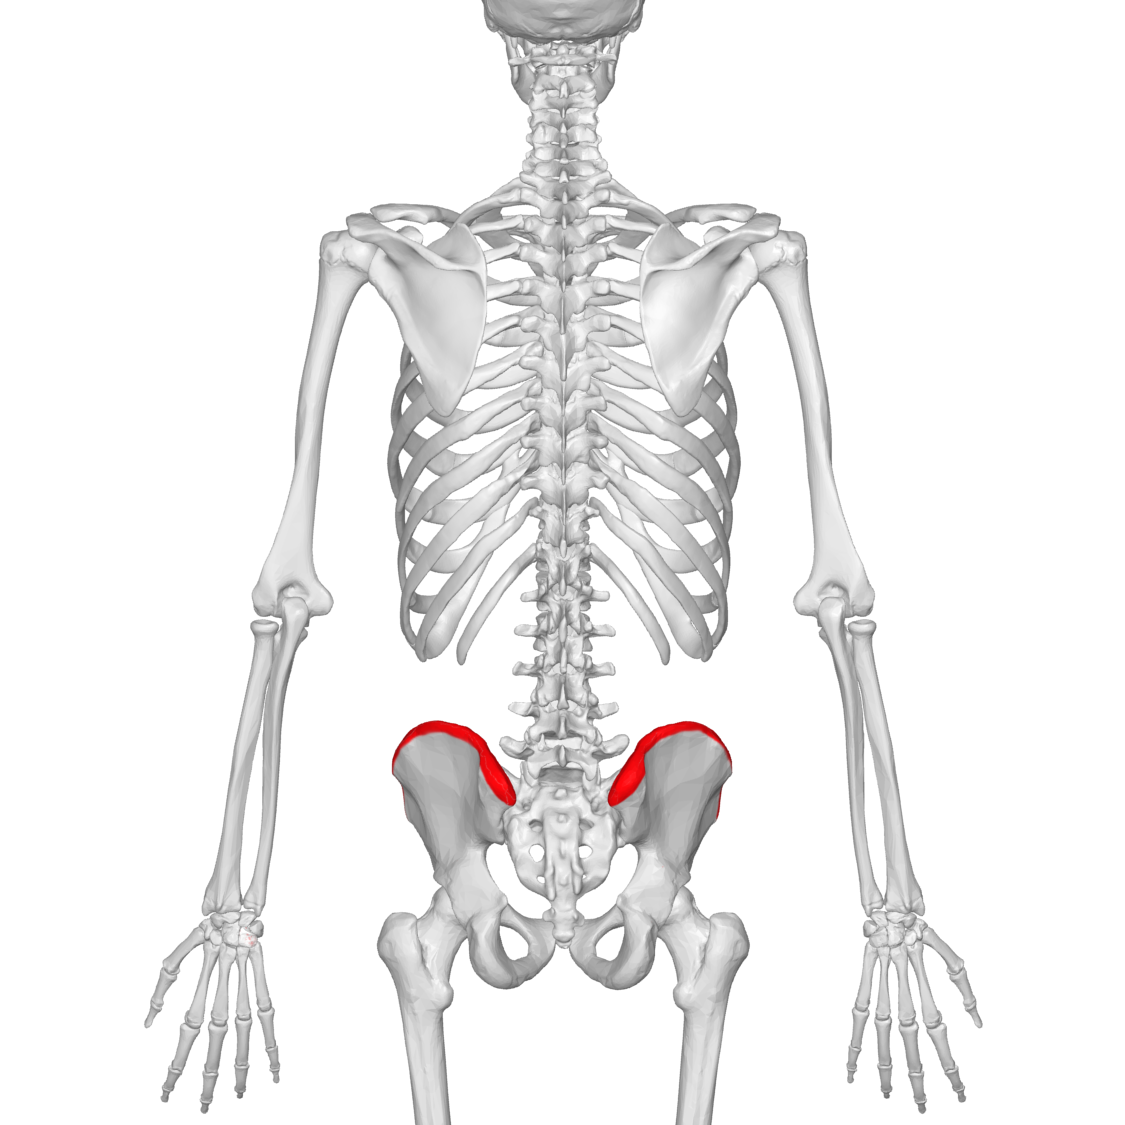 File:Iliac crest 02 - posterior view.png - Wikimedia Commons